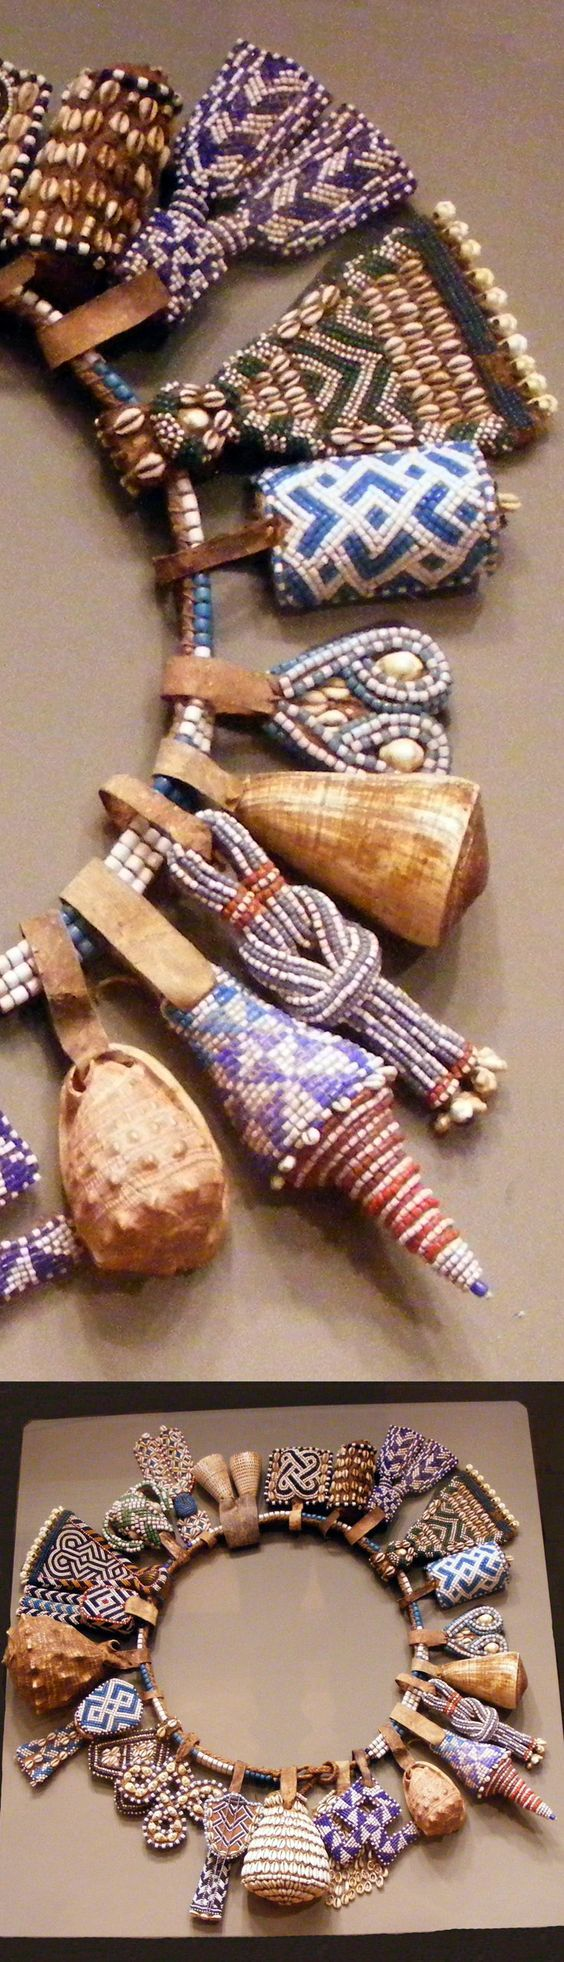 Africa | Details from a belt from the Kuba people of DR Congo | Glass beads, shells, leather, natural fiber: